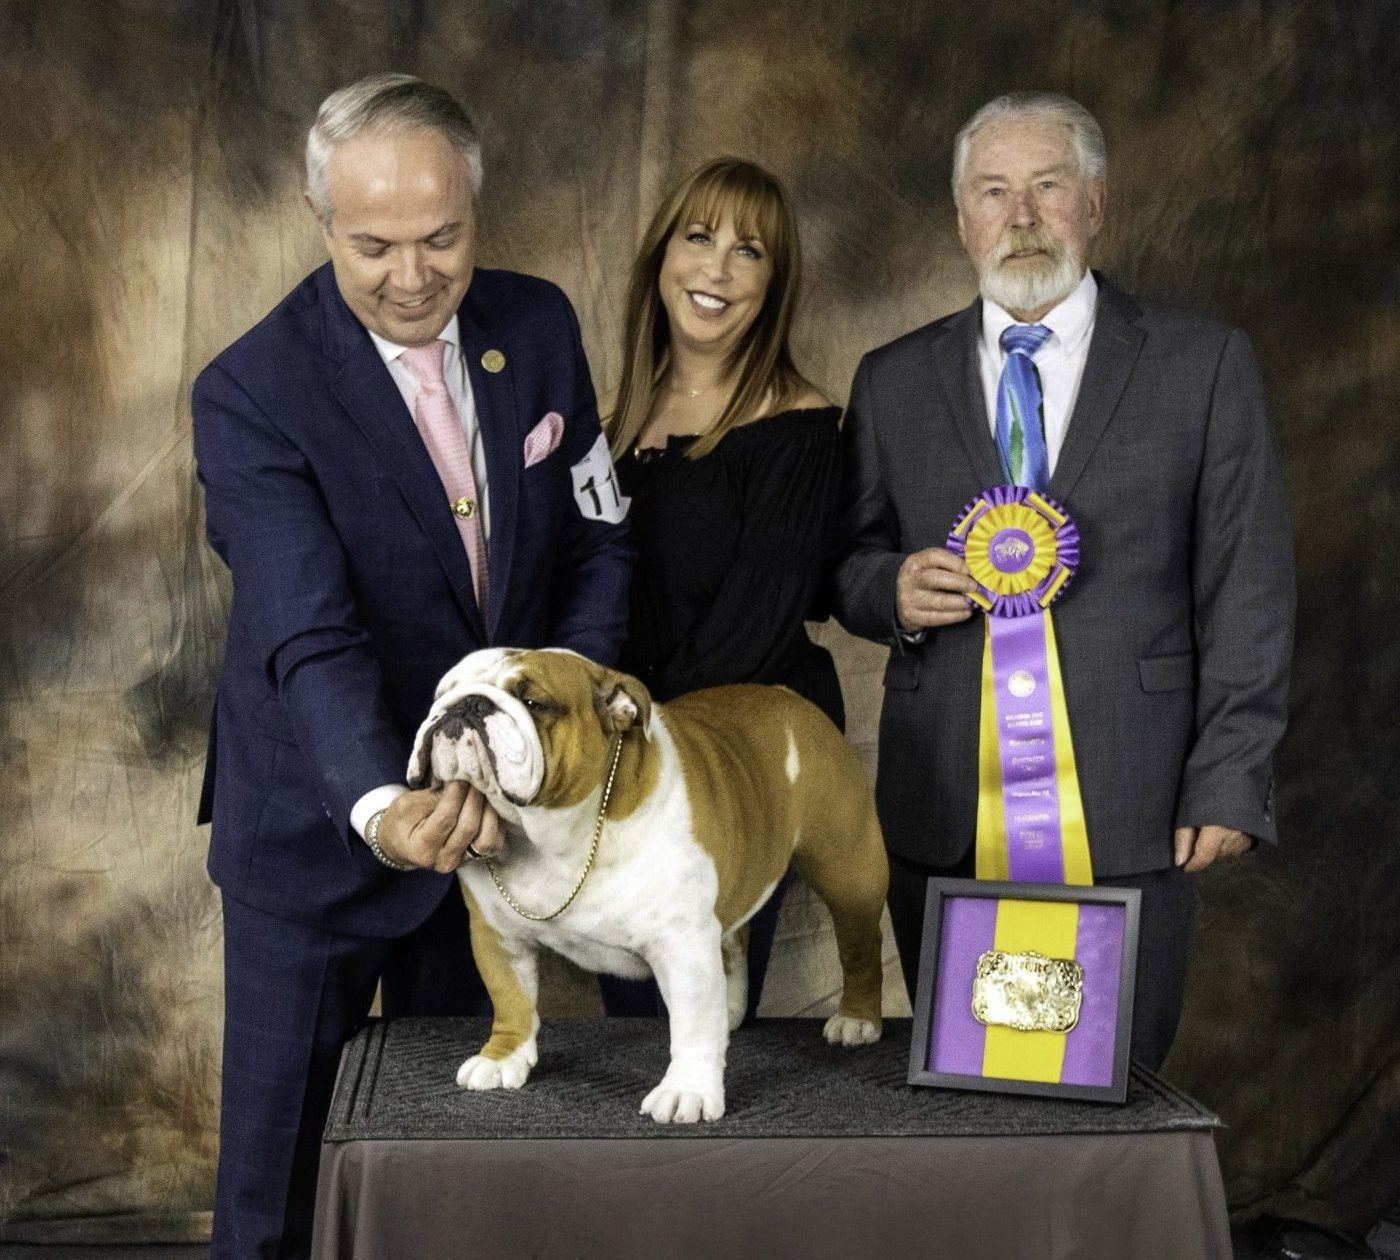 Abington High School Grad's Bulldog Captures Hearts of Audience, Wins National Dog Show